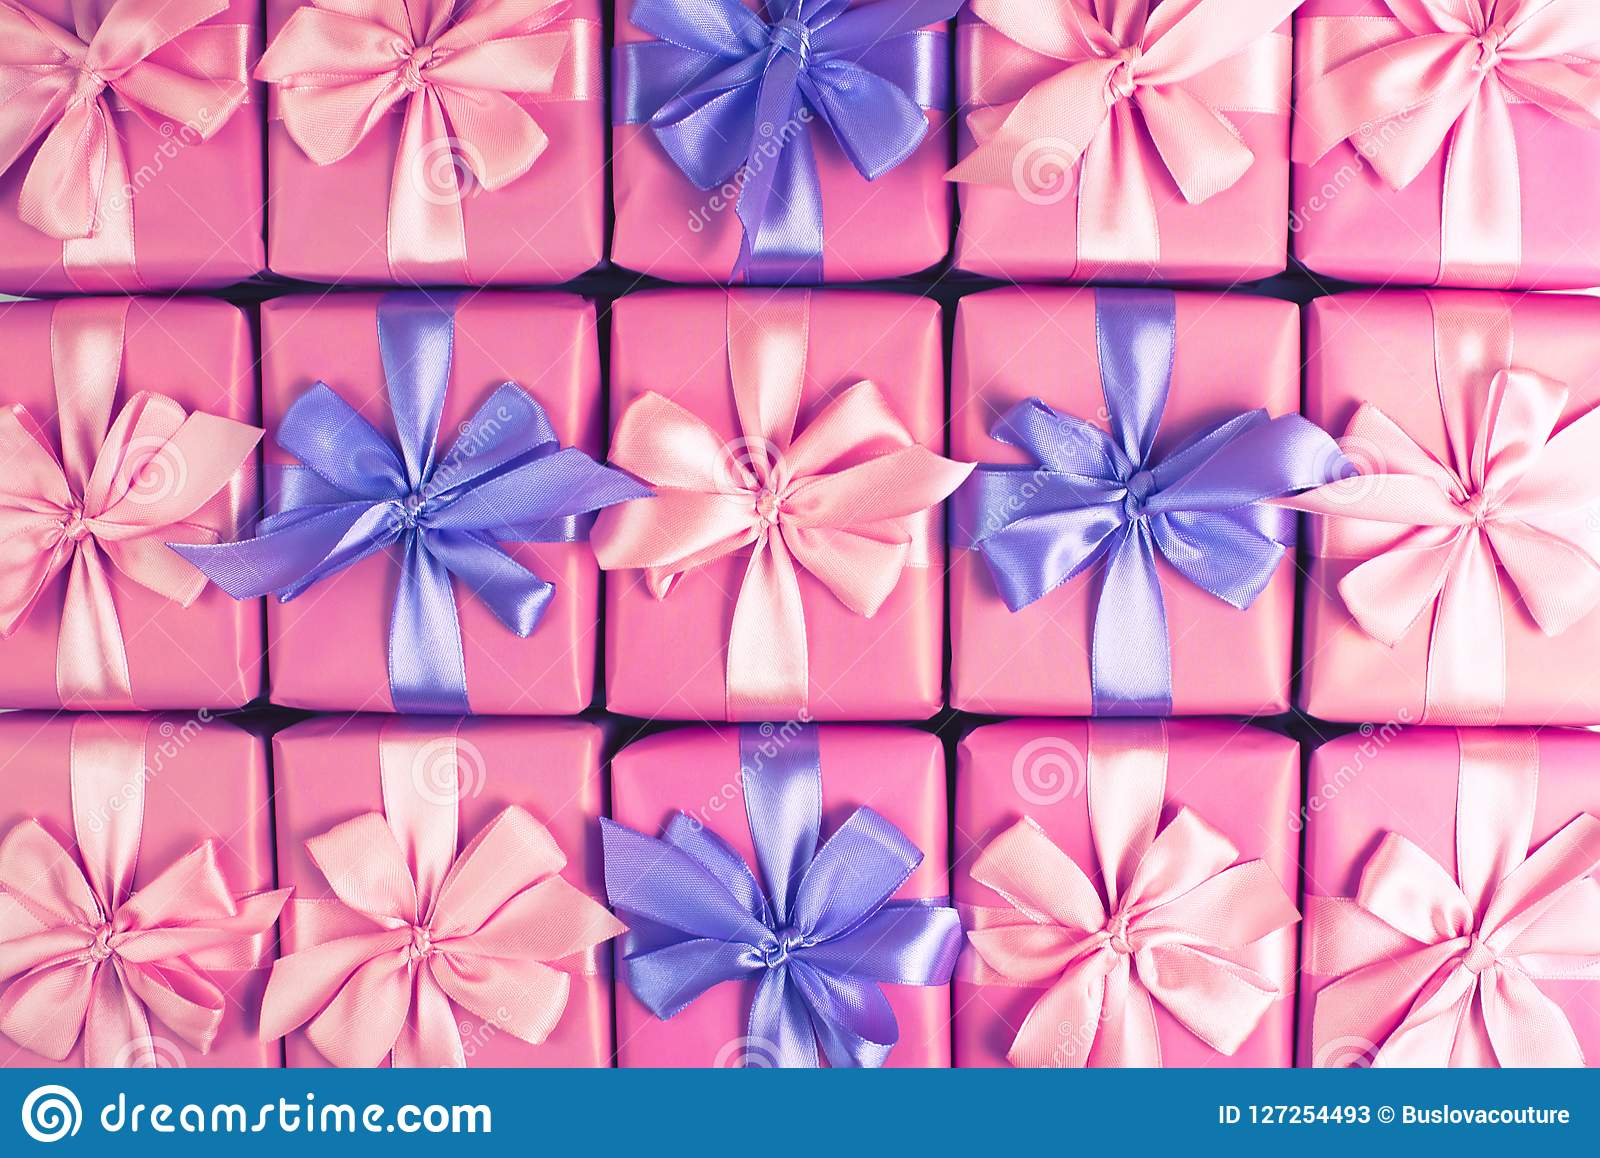 Rows of boxes with gifts decoration ribbon satin bow pink A top view of Flat lay toning